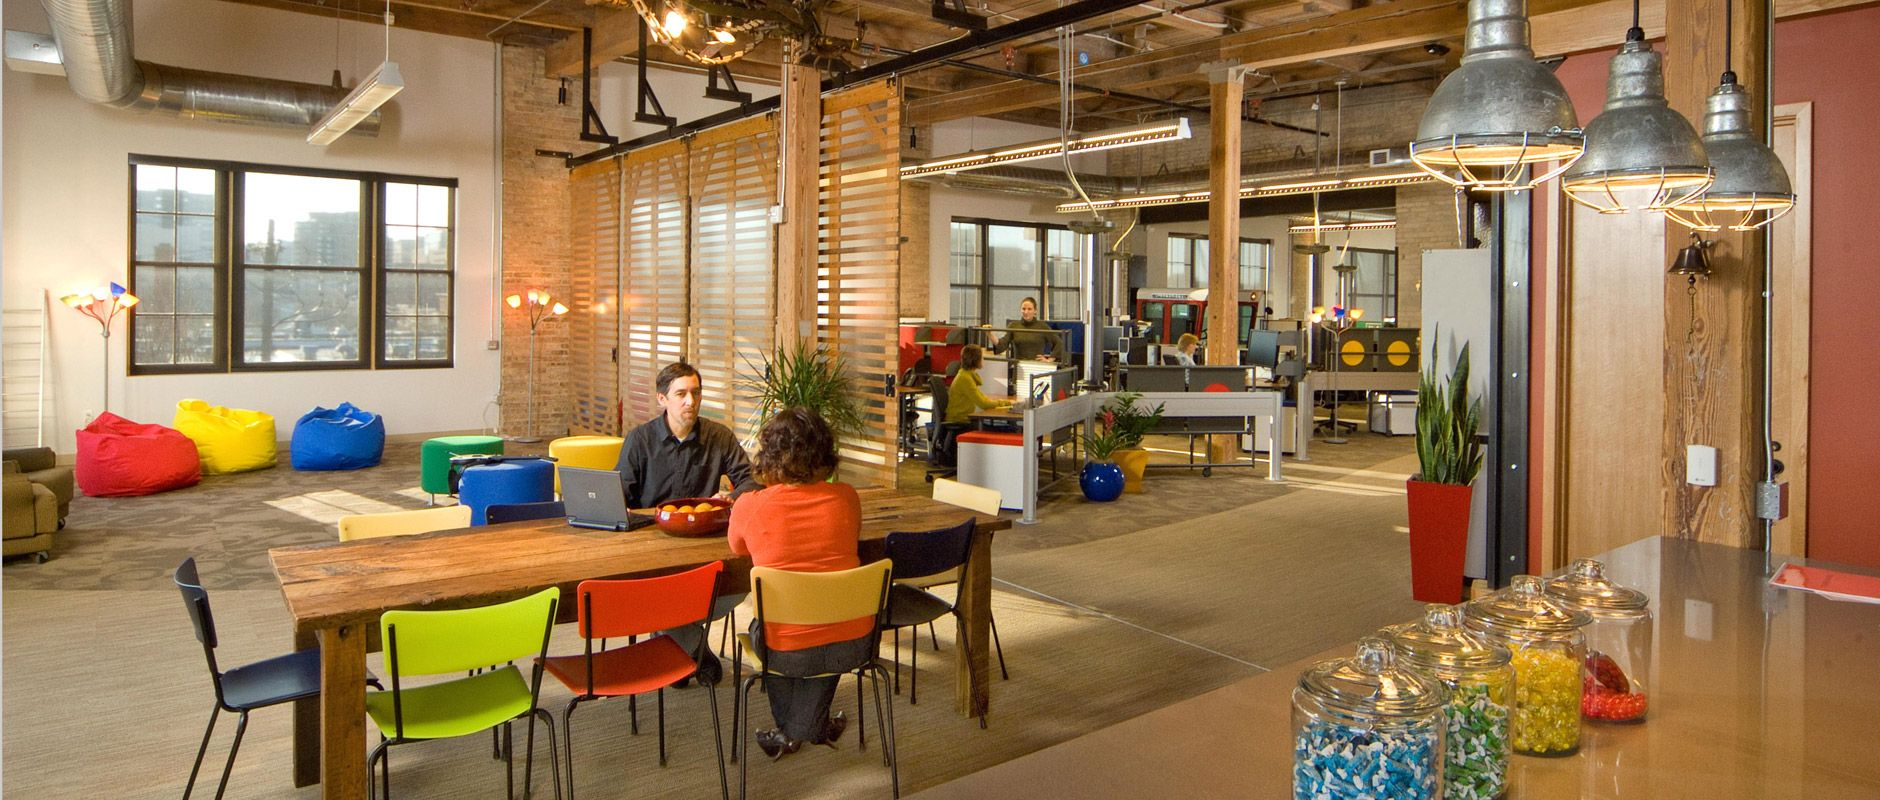 Google corporate kahler slater corporate dining pinterest learning spaces google - Google head office photos ...